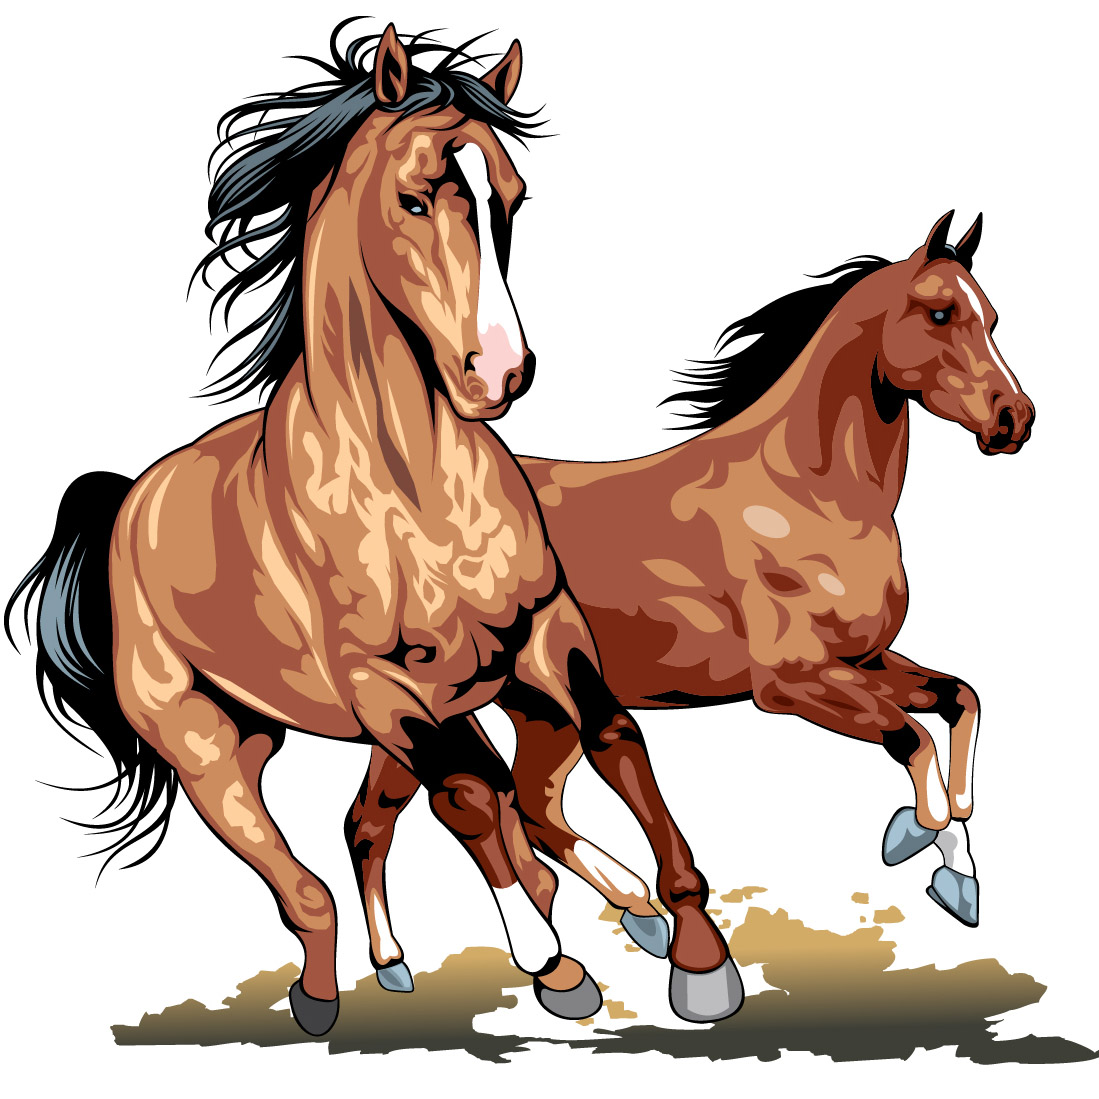 Free horse vector clipart jpg royalty free Free Horse Vector Free, Download Free Clip Art, Free Clip Art on ... jpg royalty free